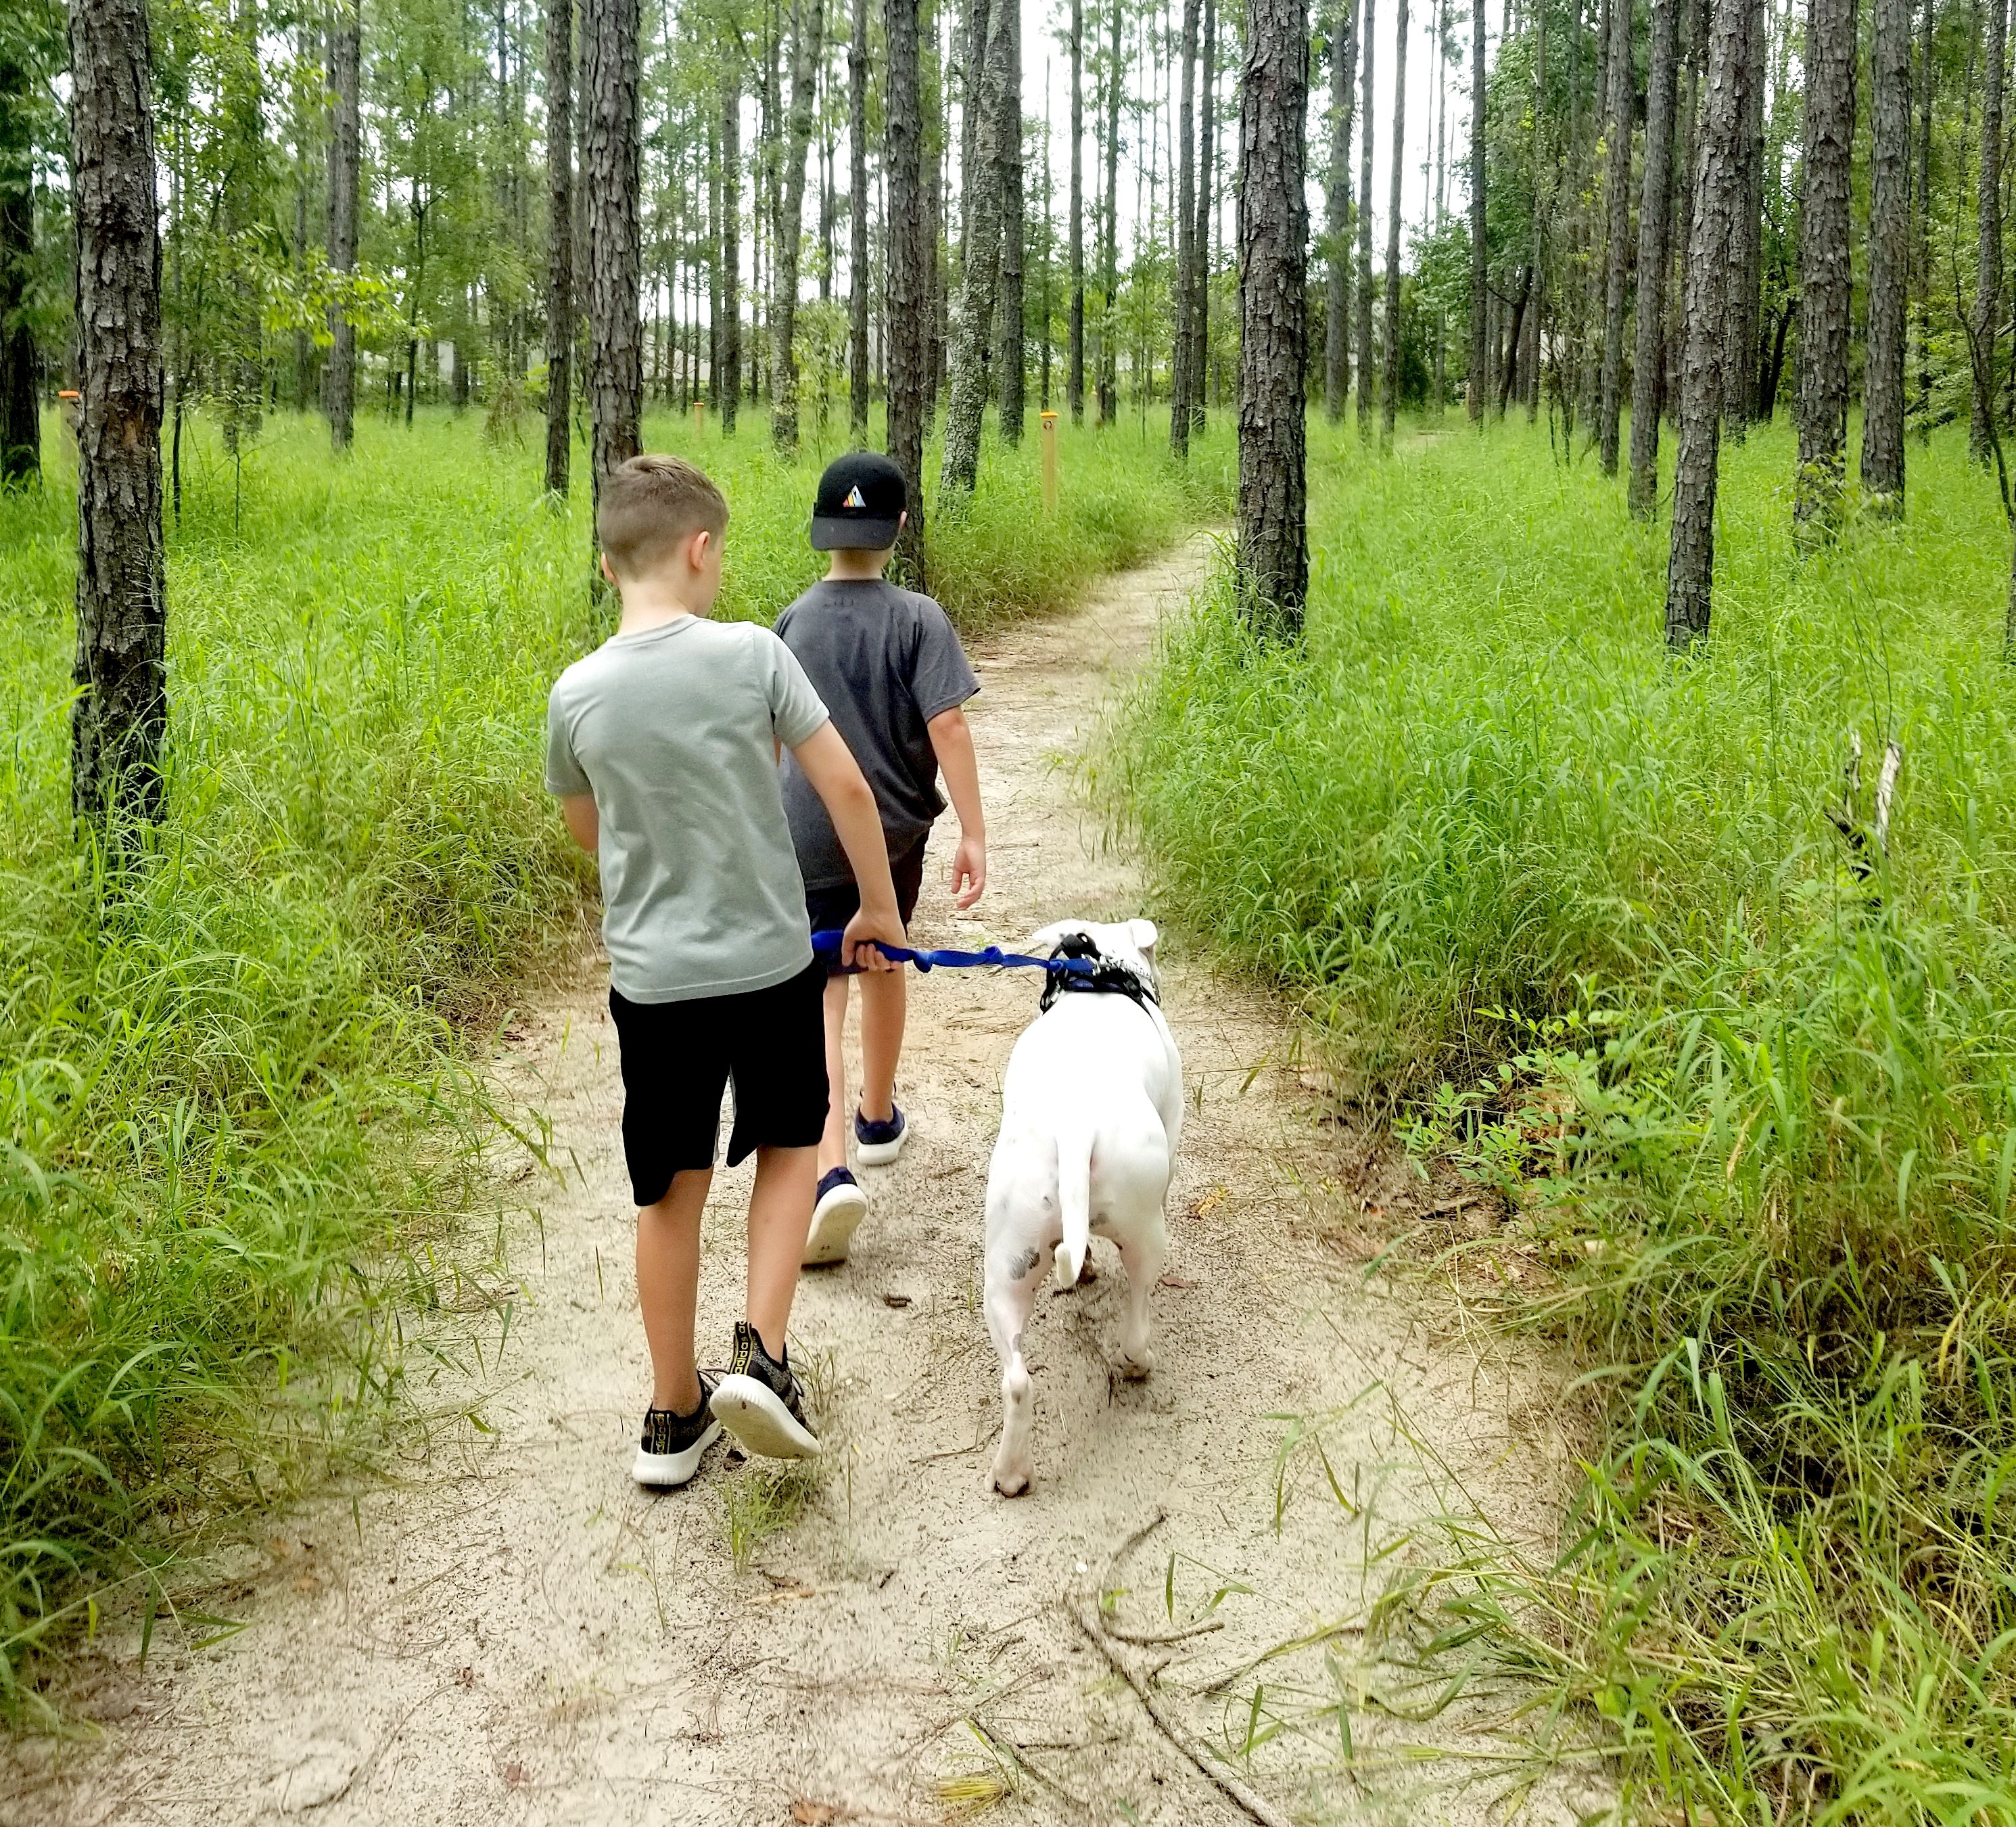 photo of two boys walking dog on leash on sandy trail path among trees